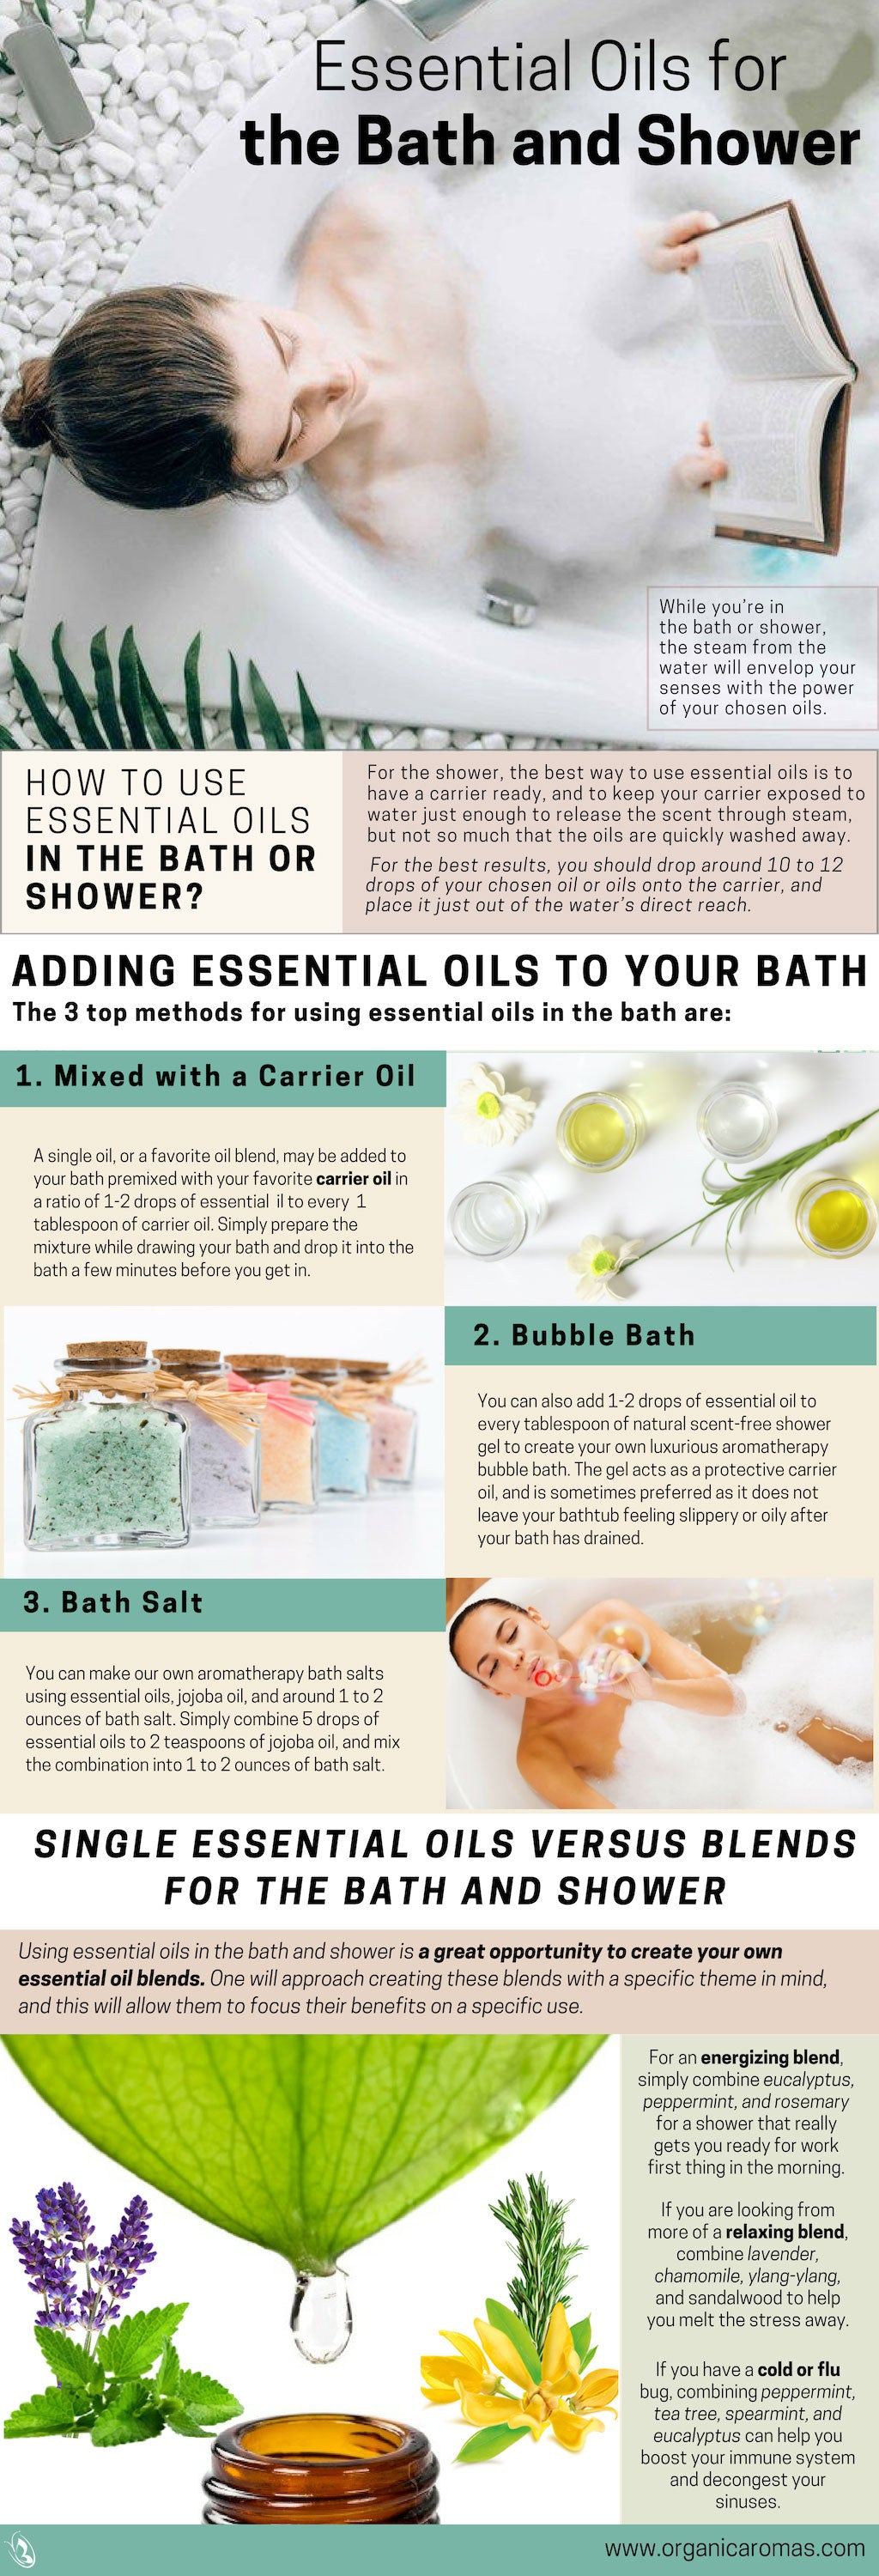 Essential Oils for the Bath and Shower